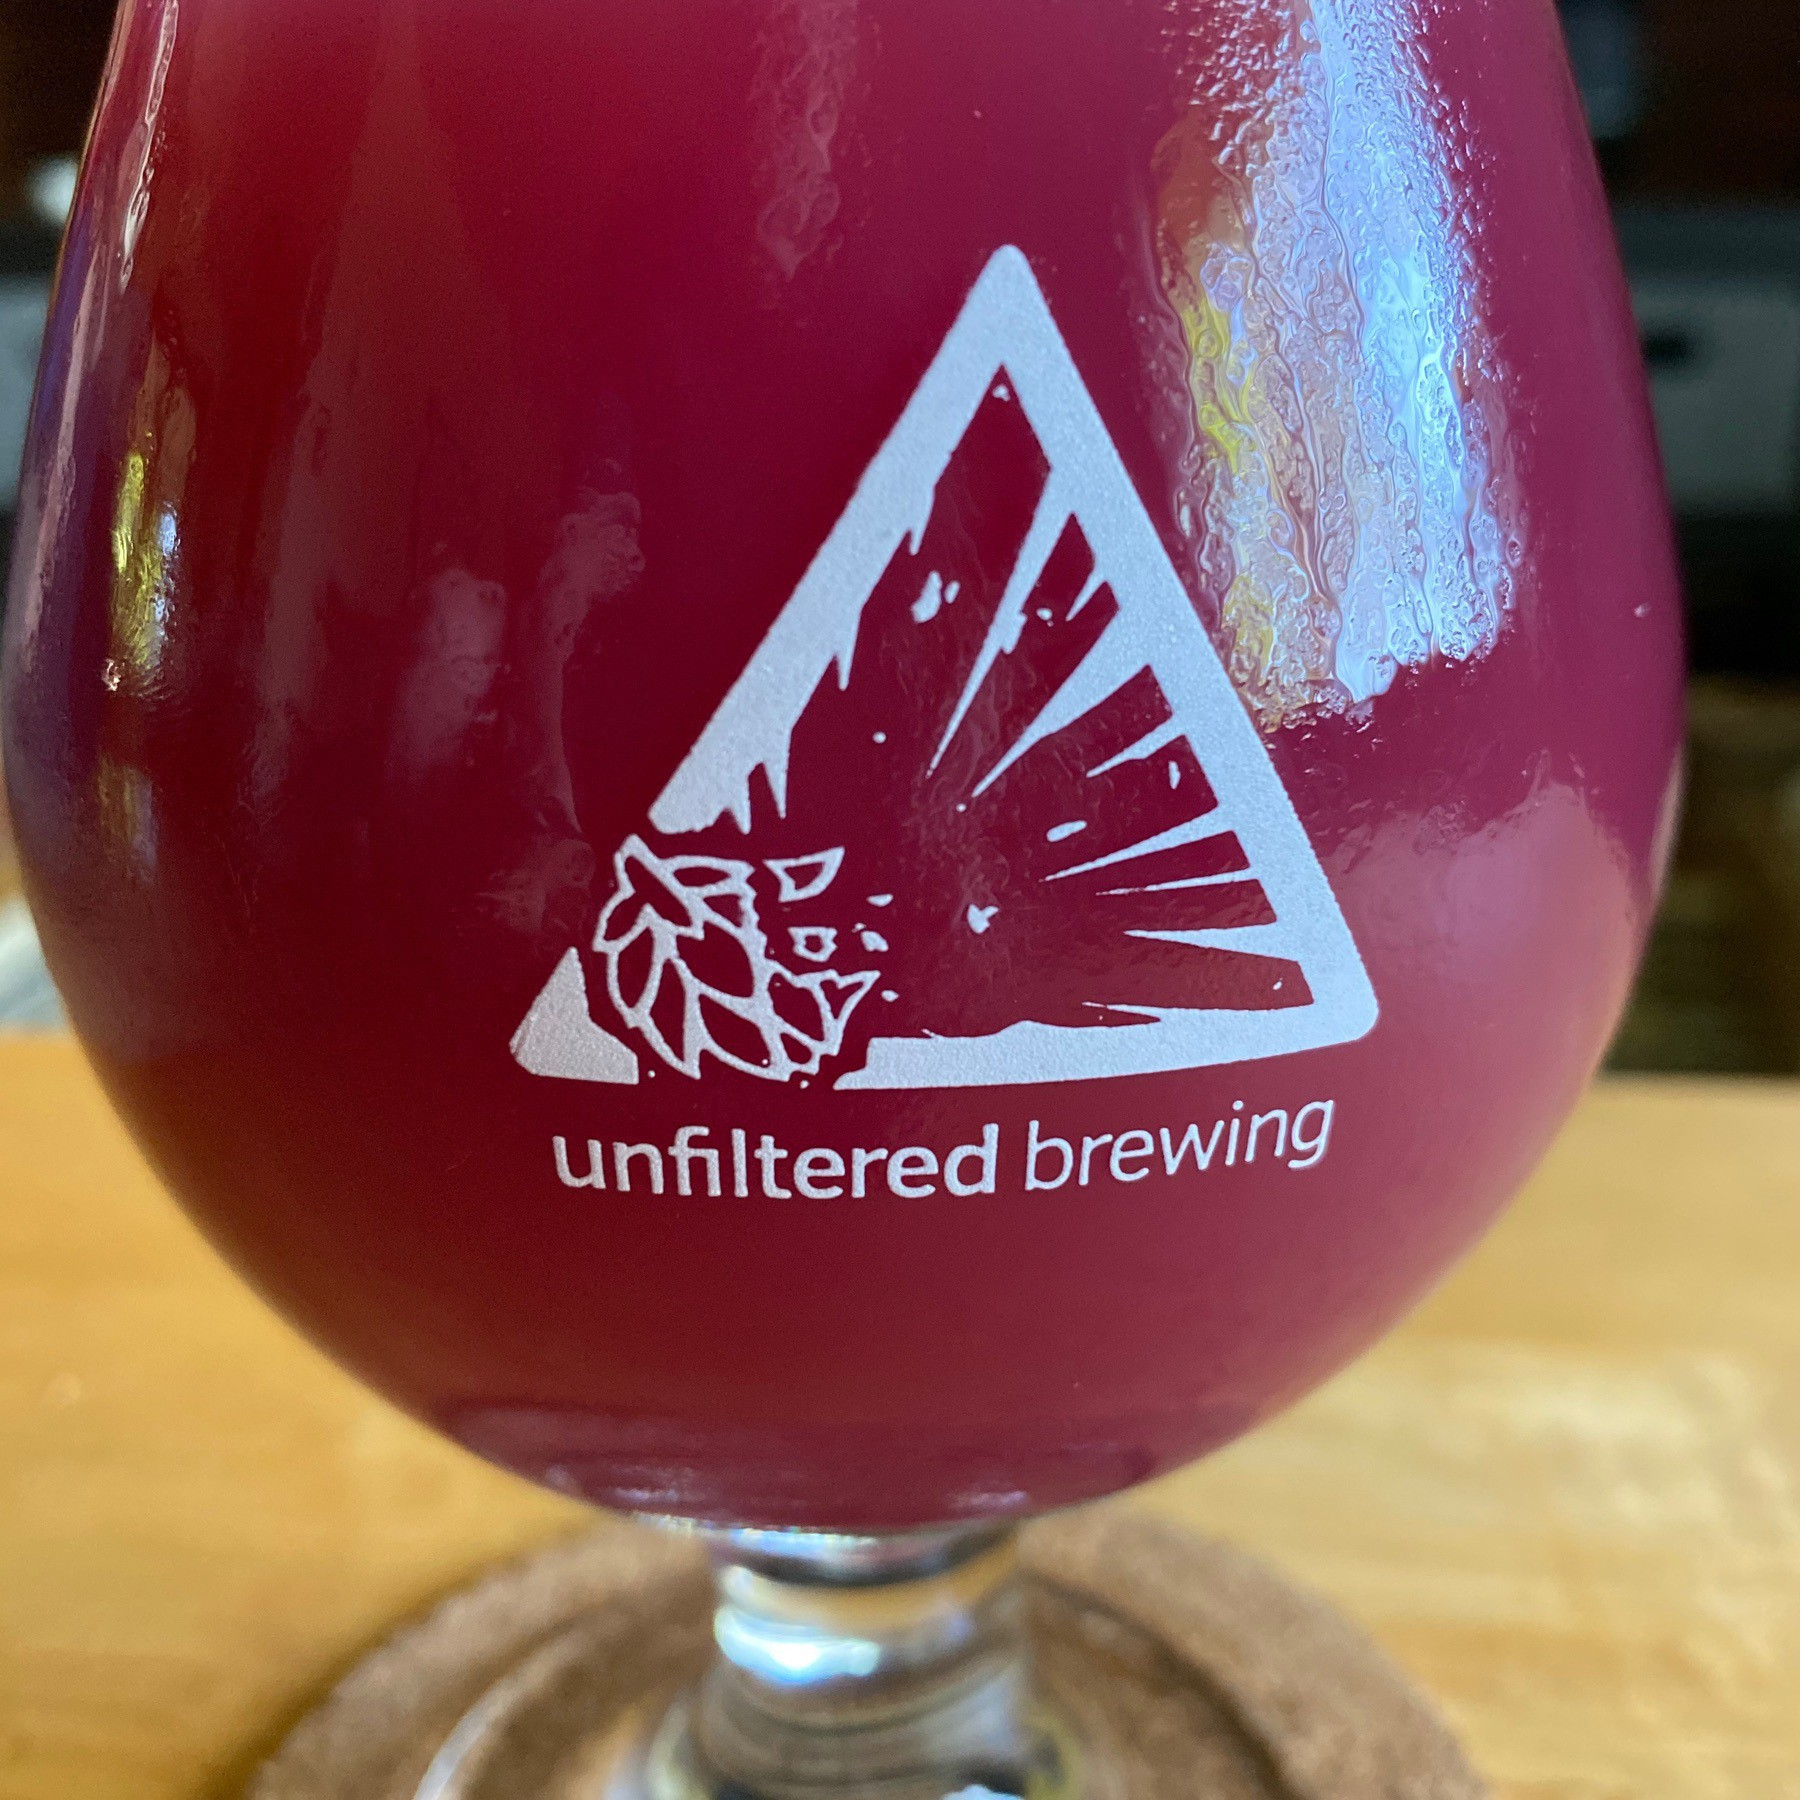 Blueberry beer in glass.